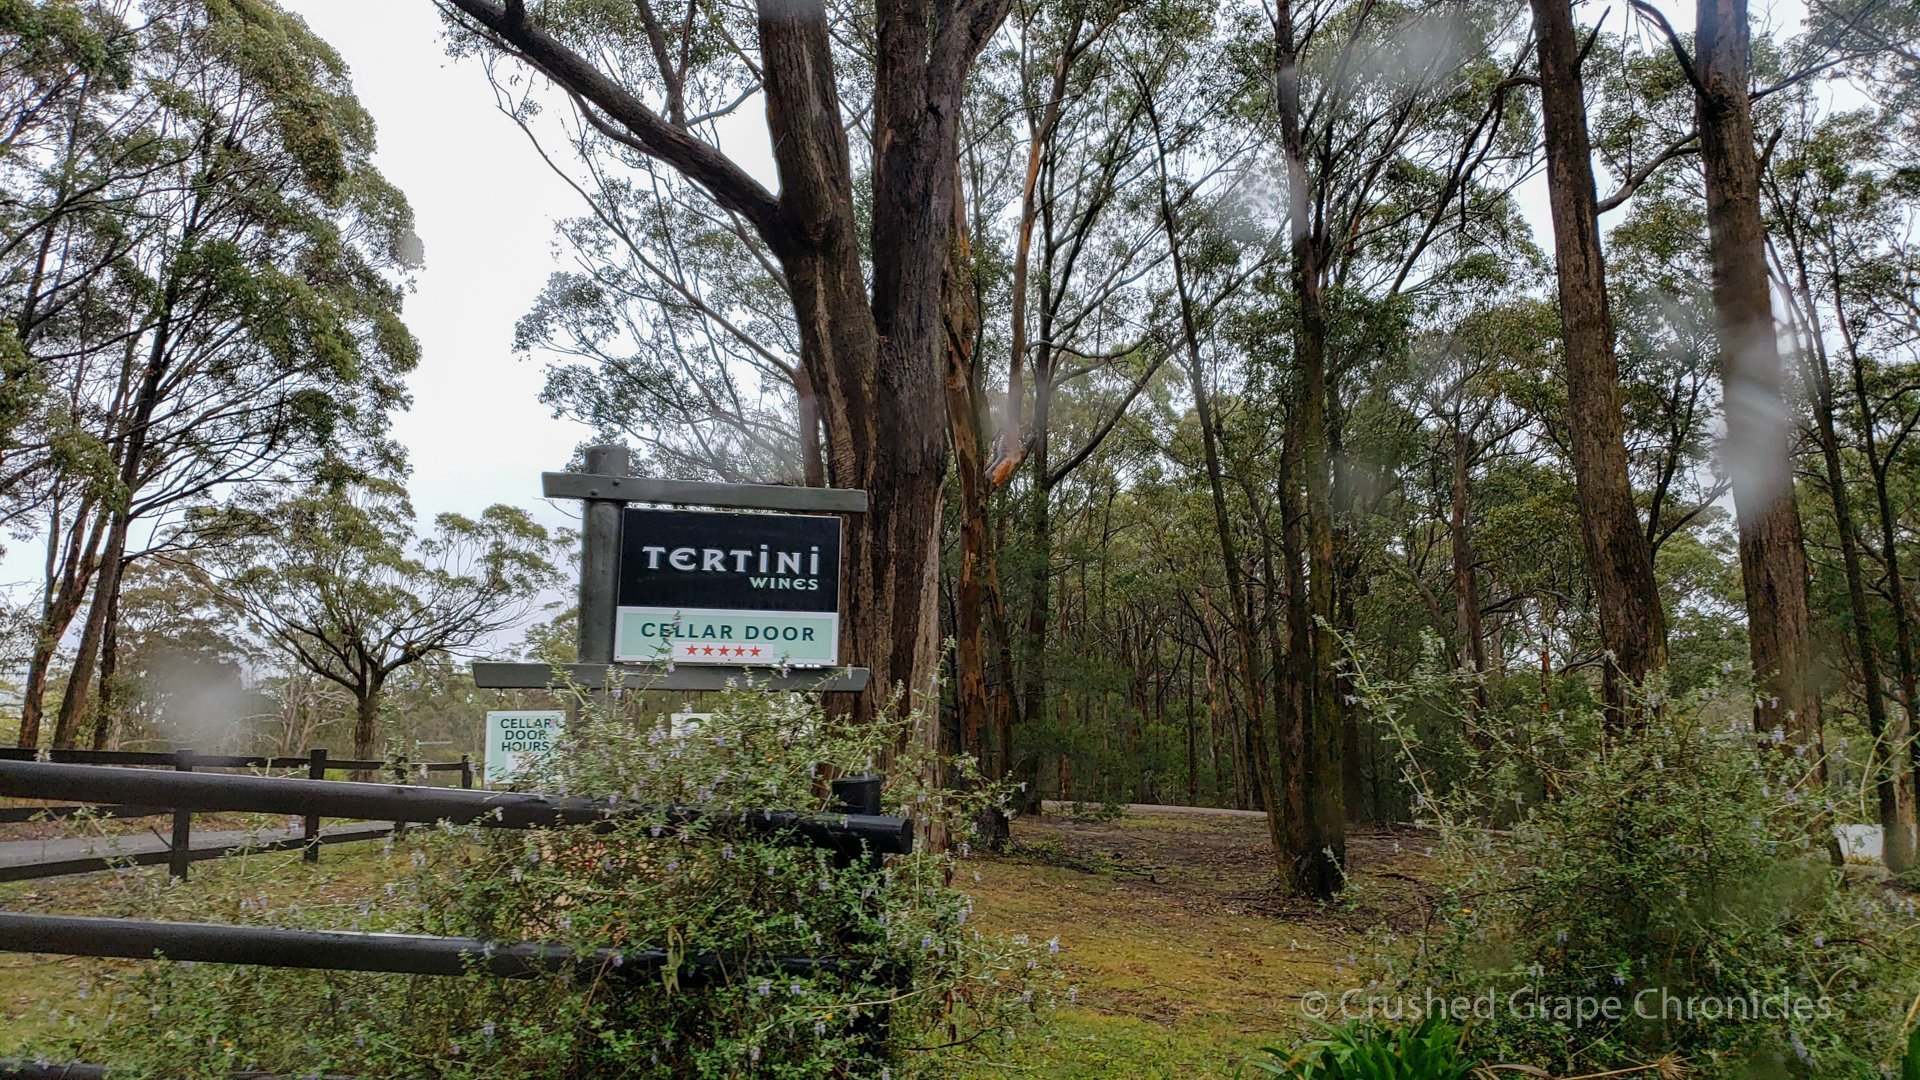 The Tertini entrance sign, unpretentiously nestled in the trees Southern Highlands New South Wales Australia